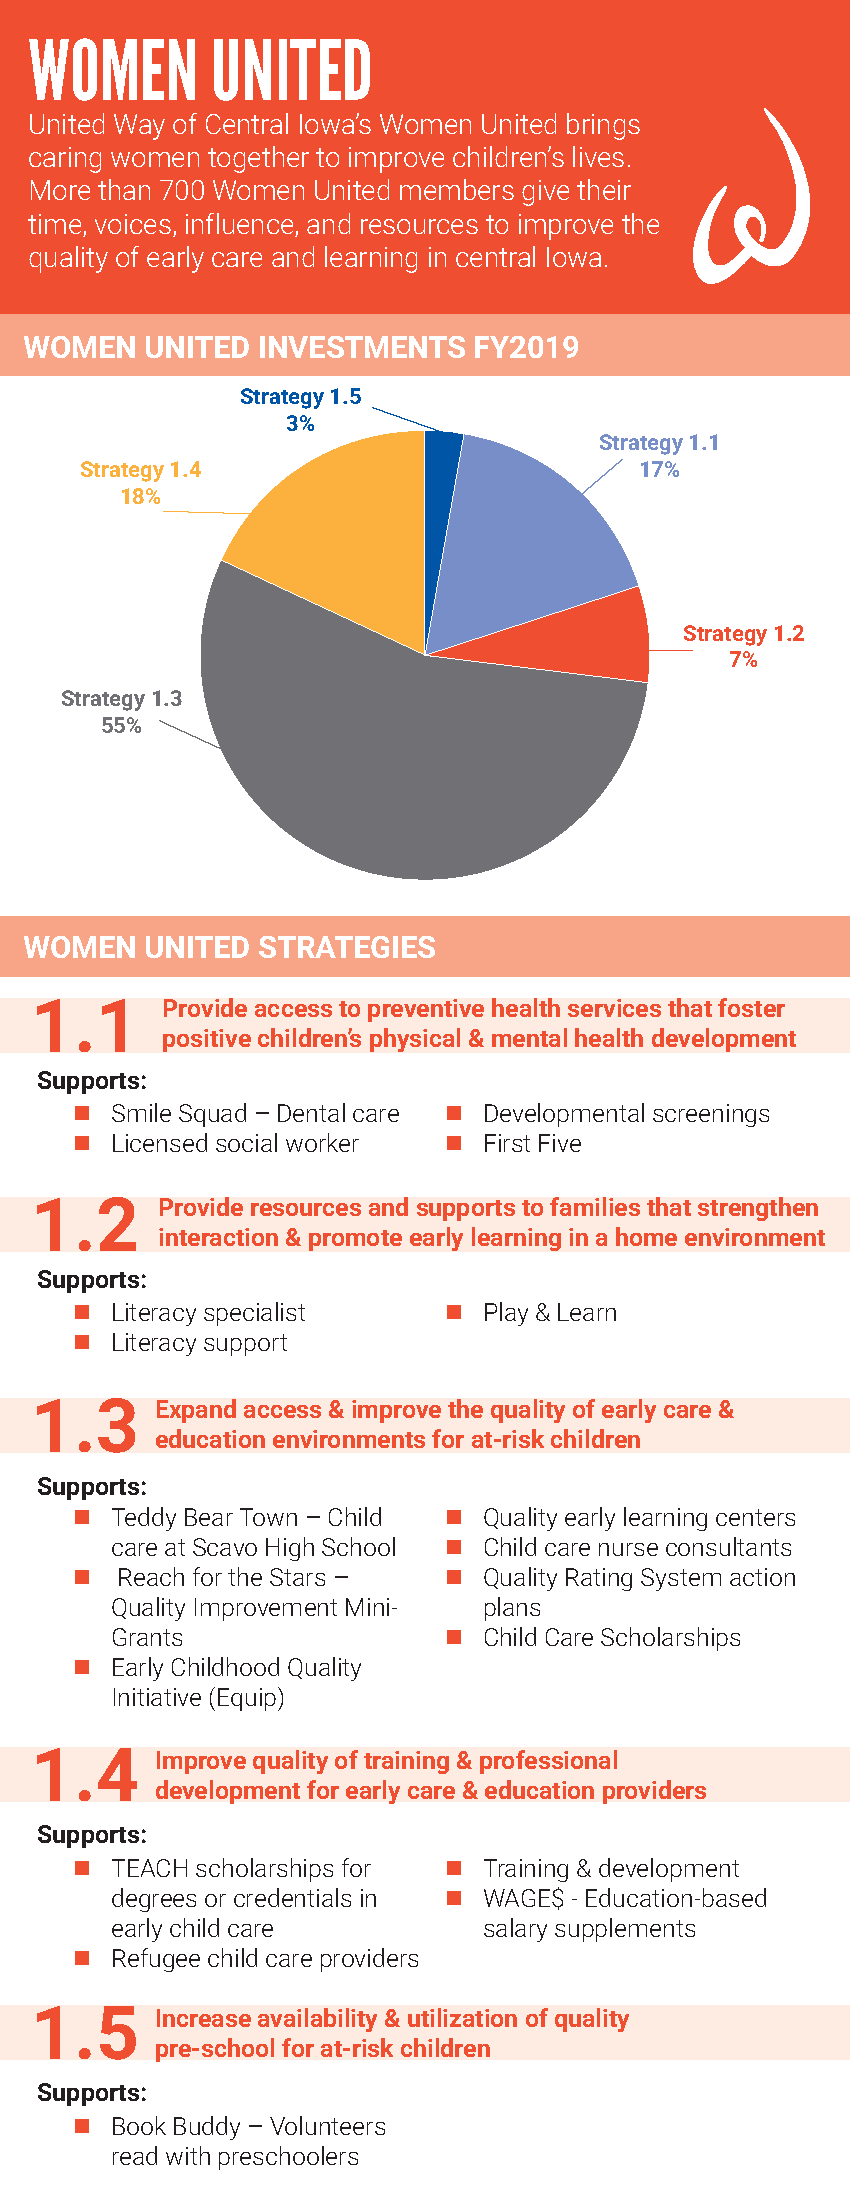 women united investments